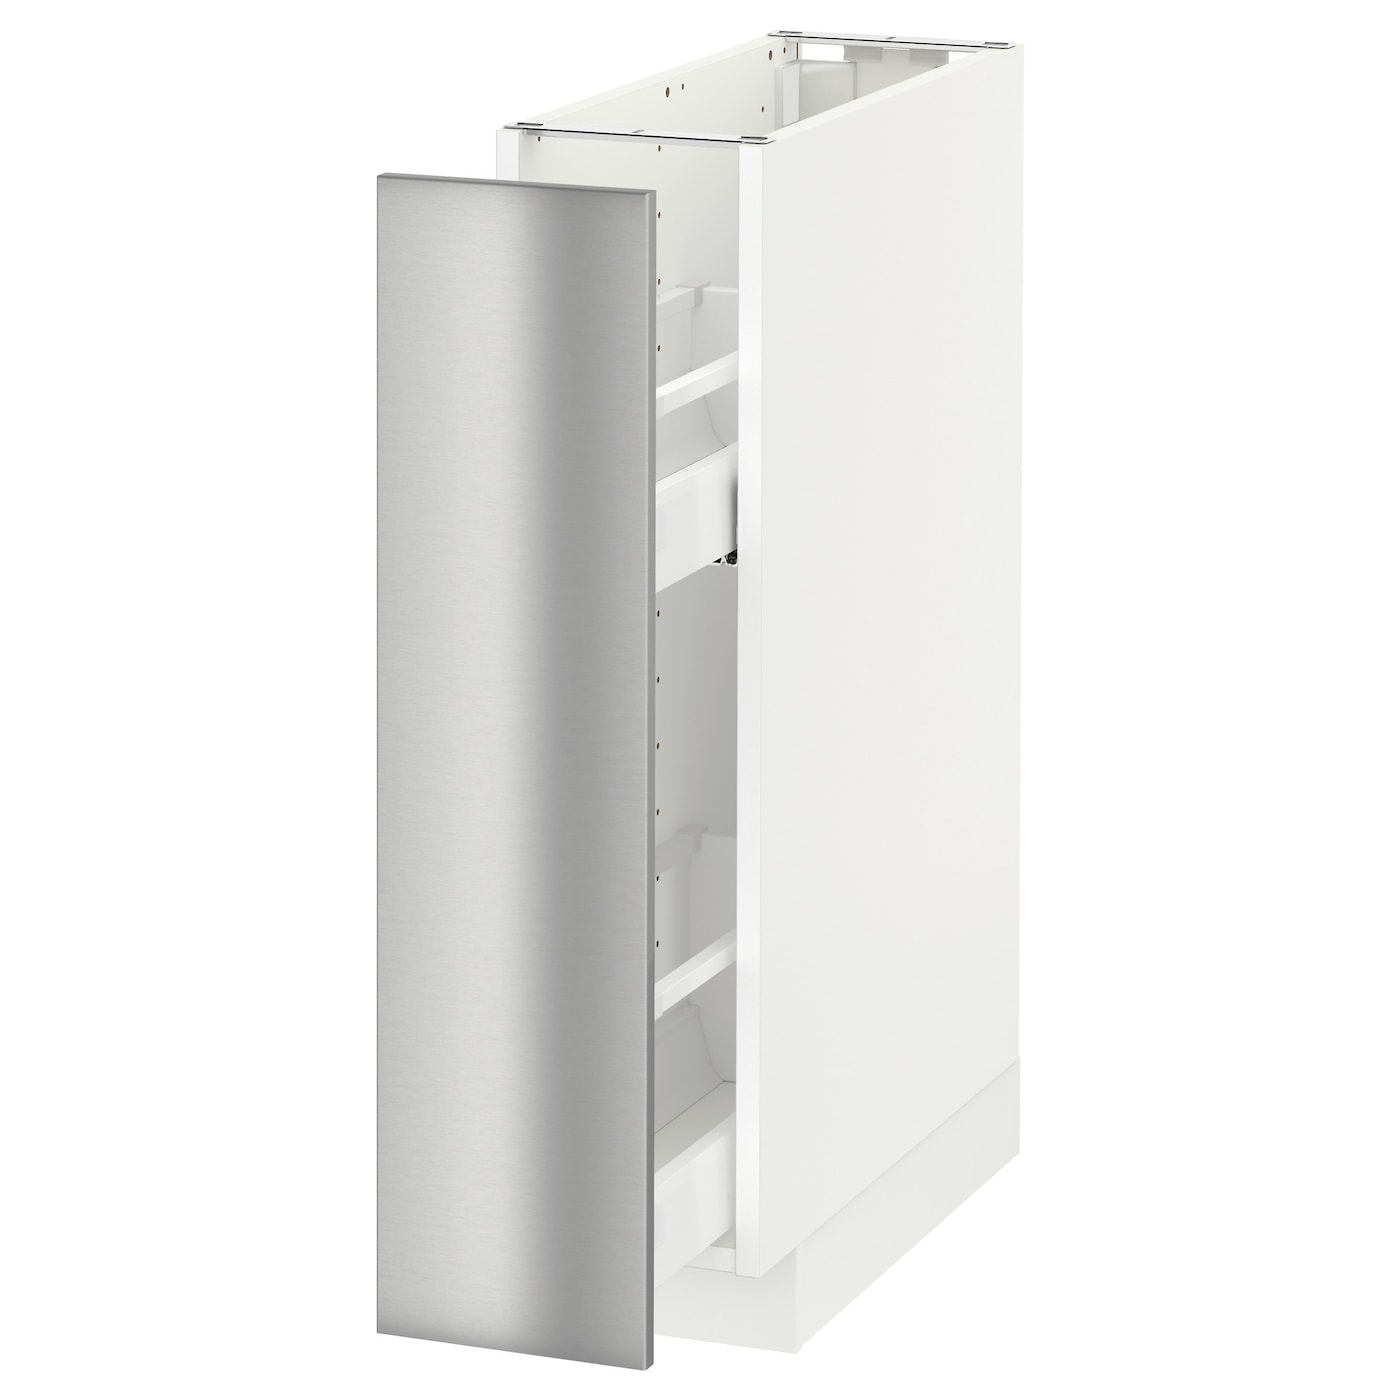 Metod base cabinet pull out int fittings white grevsta for Stainless steel kitchen base cabinets